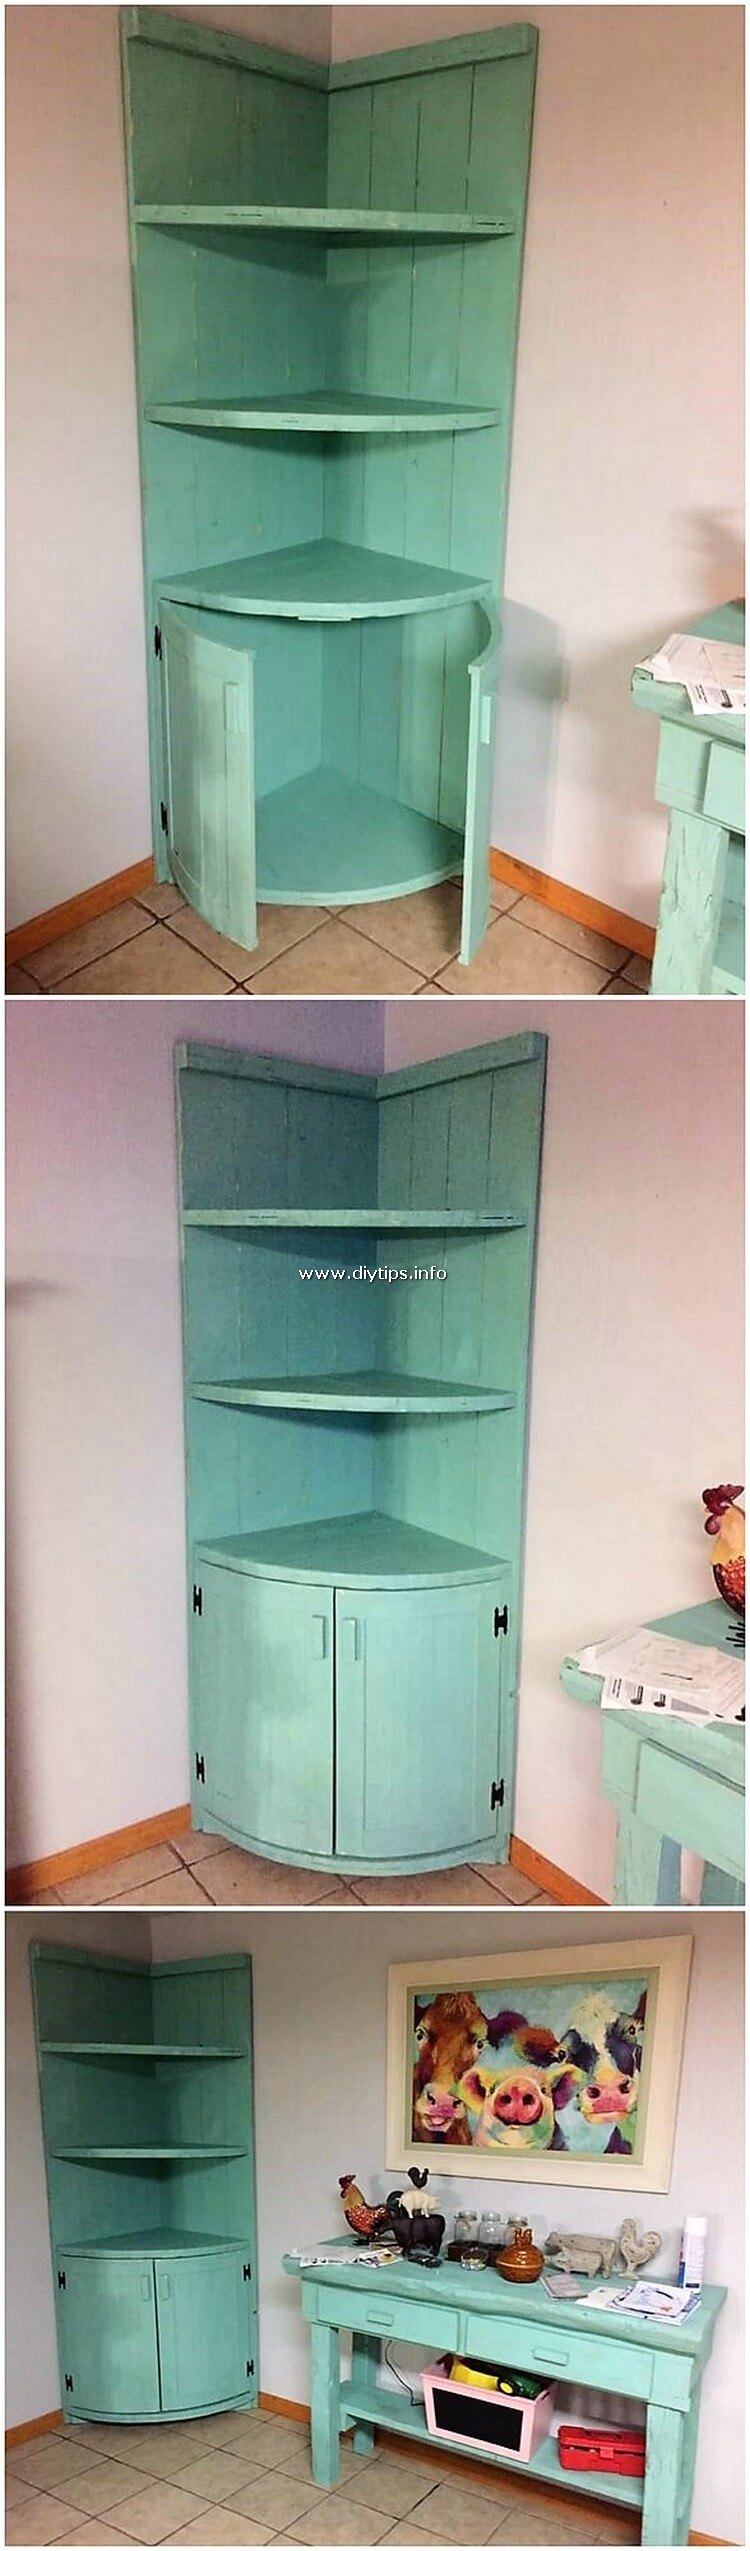 Pallet Shelving Unit with Cabinet